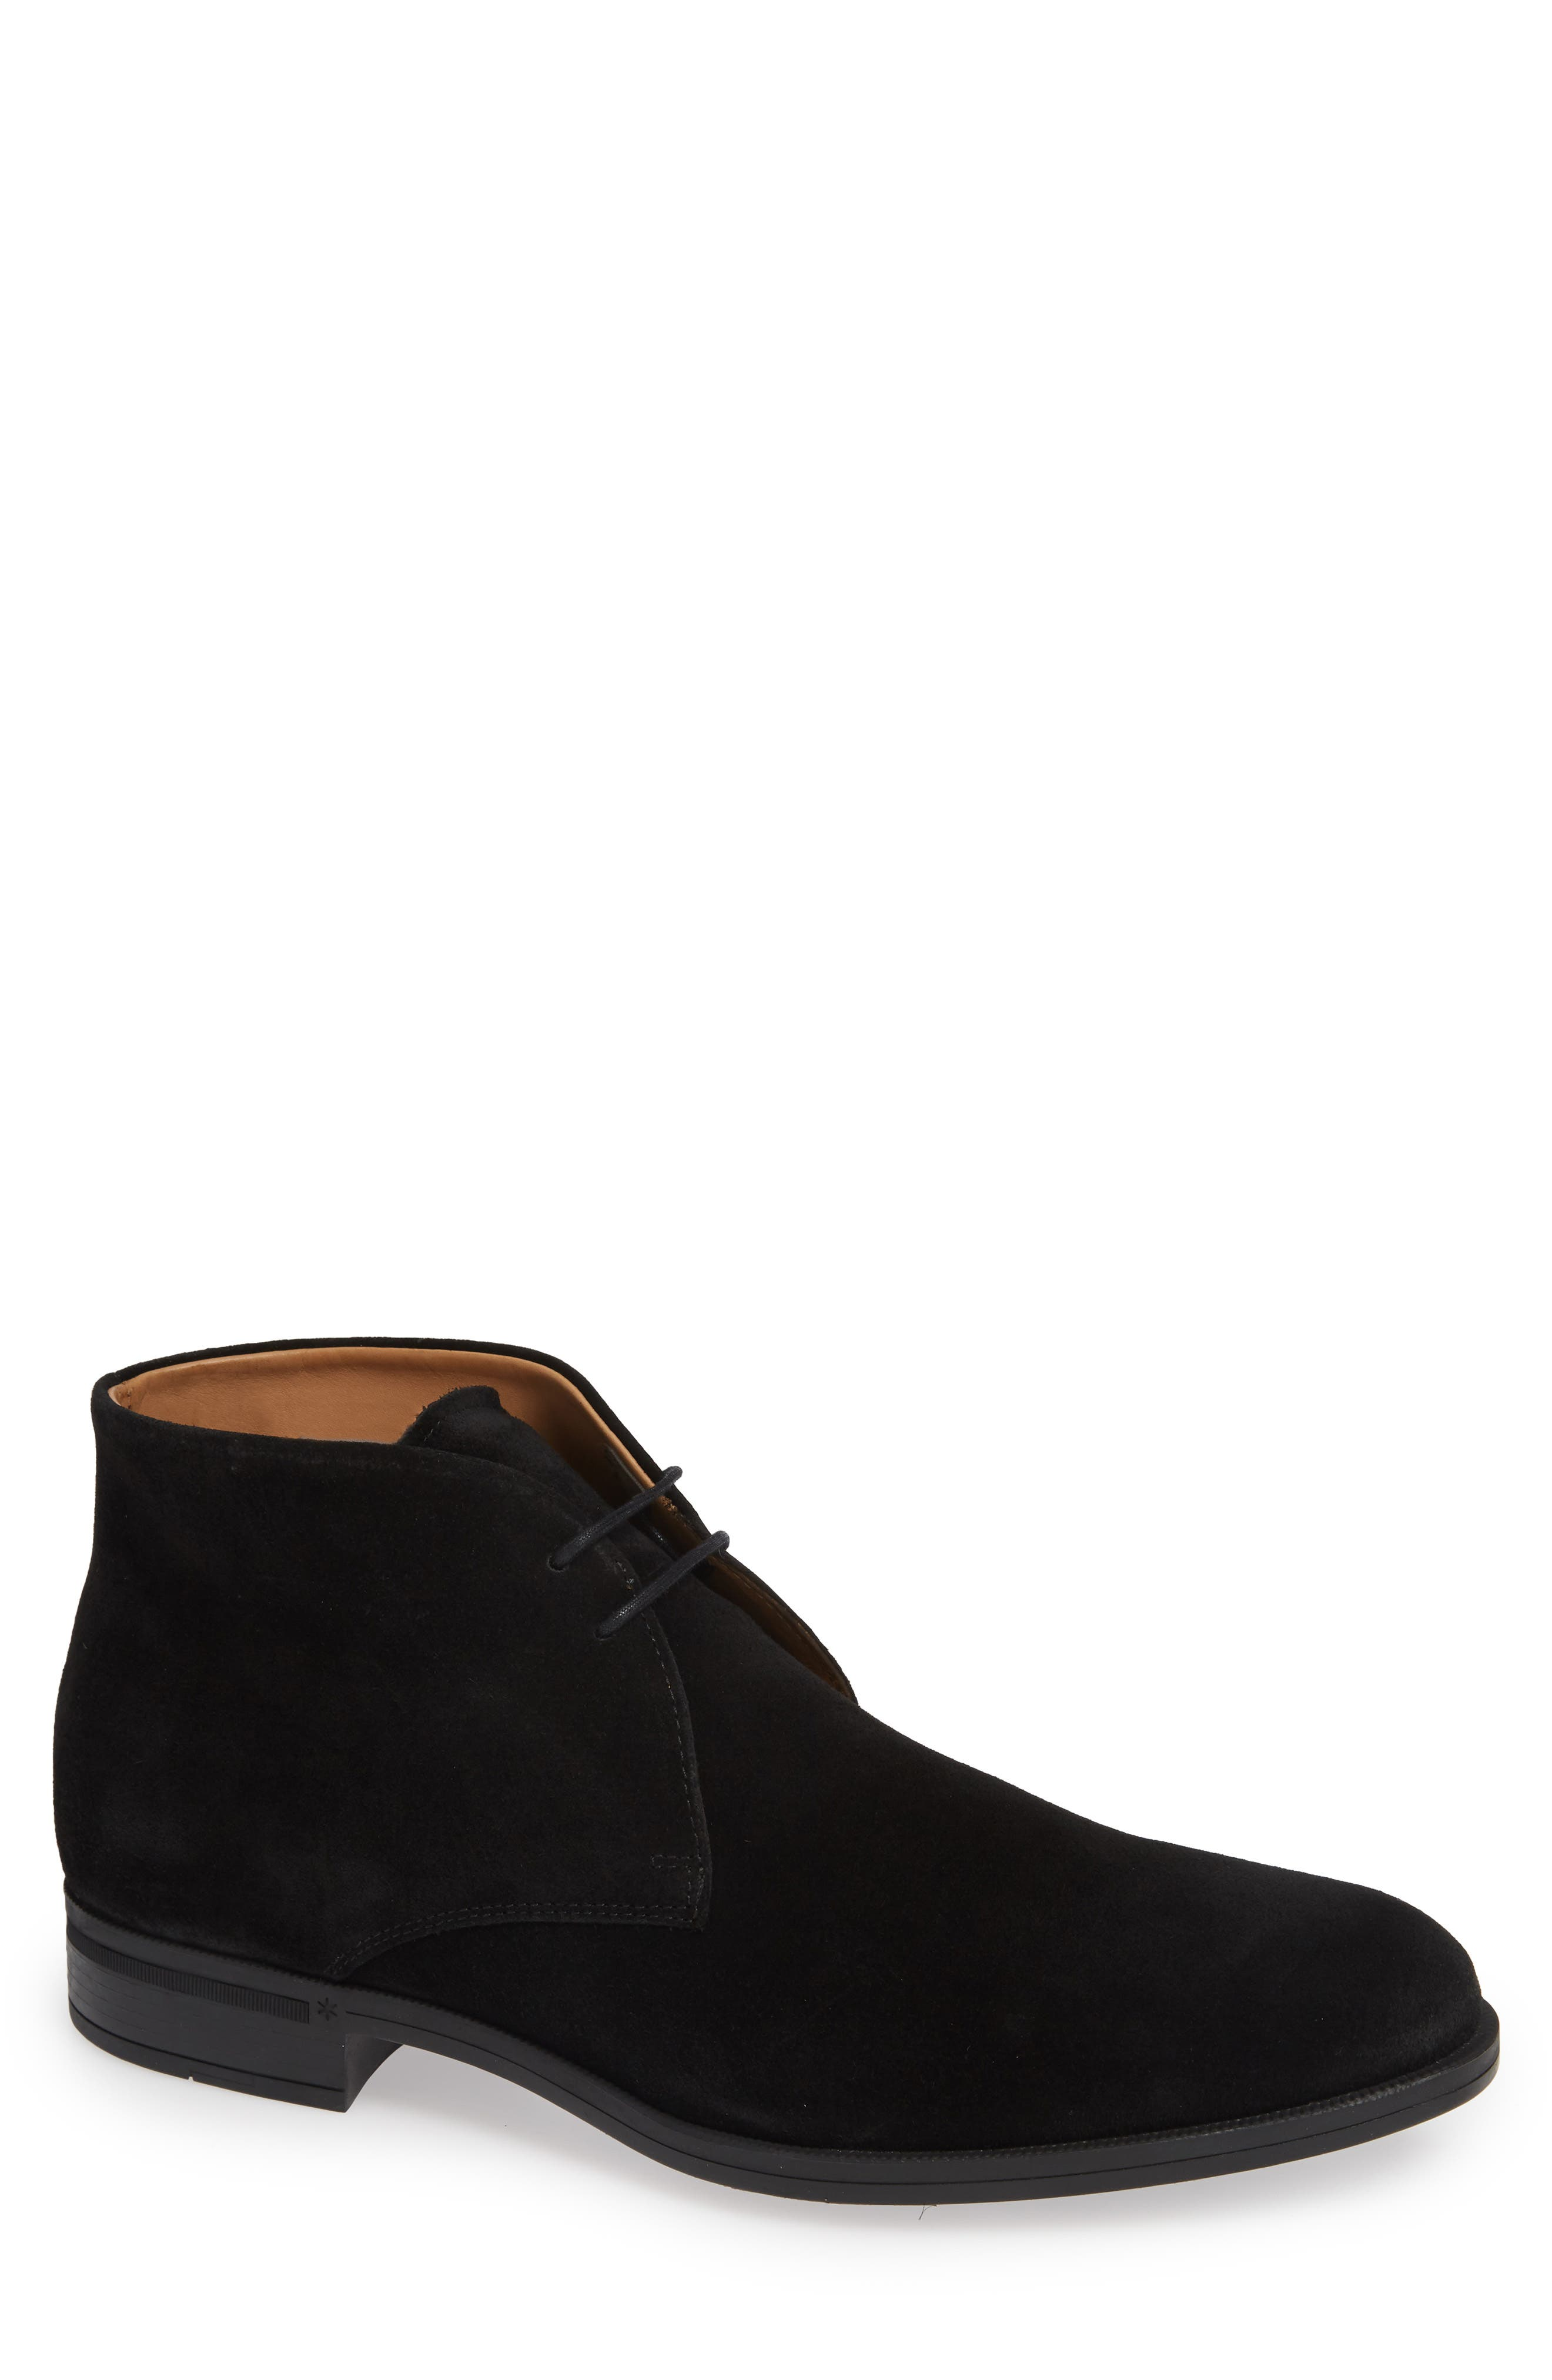 VINCE CAMUTO Iden Chukka Boot, Main, color, BLACK SUEDE